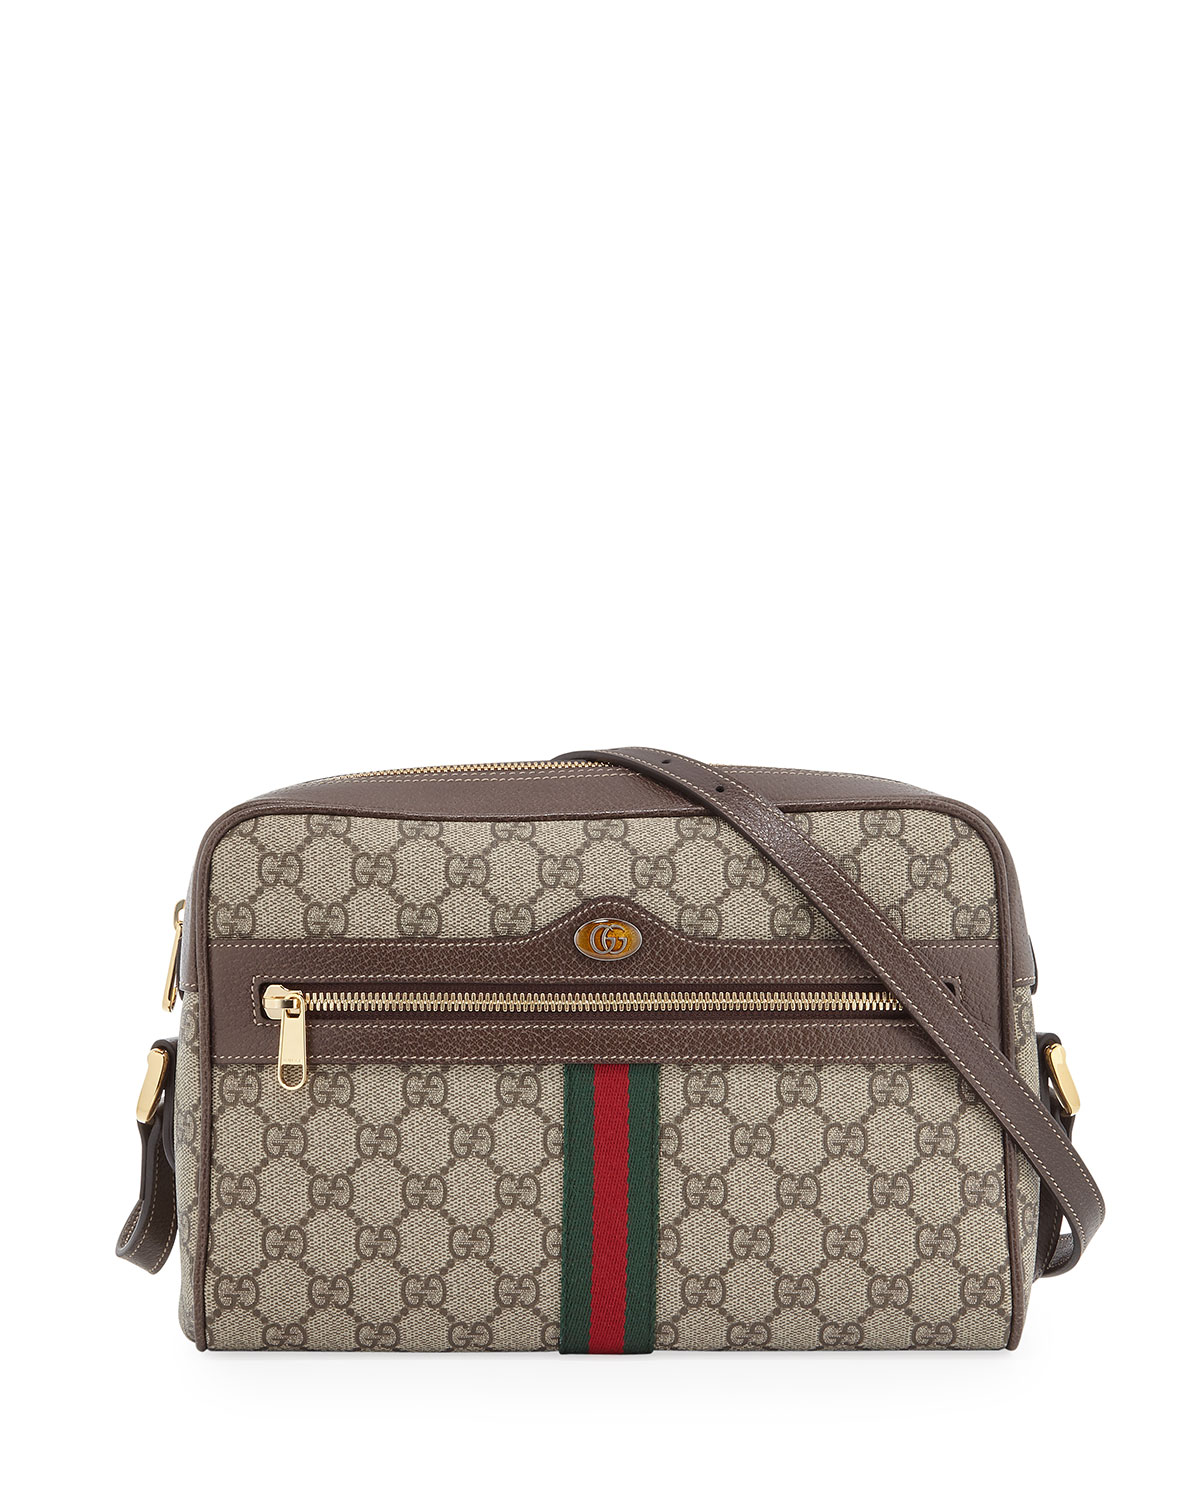 653d68045 Gucci Ophidia Medium GG Supreme Camera Crossbody Bag | Neiman Marcus